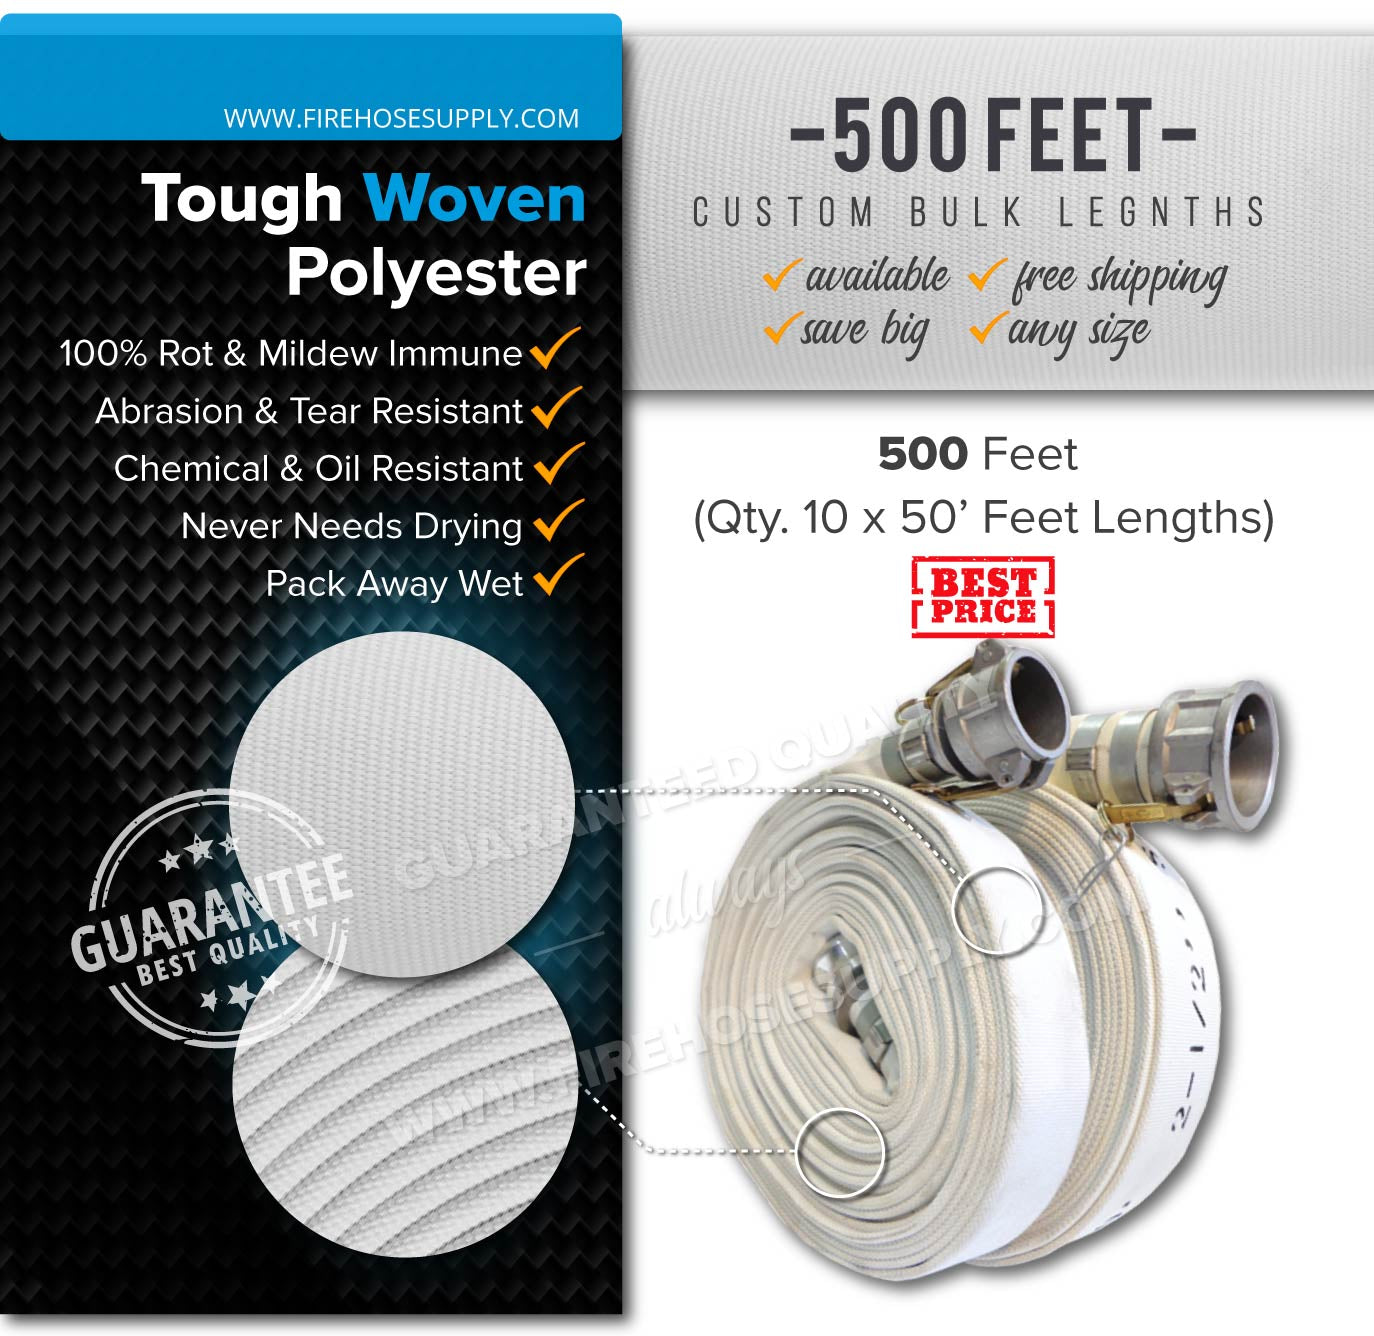 1 inch 500 feet camlock quick connect hose polyester bulk wholesale (10 x 50)